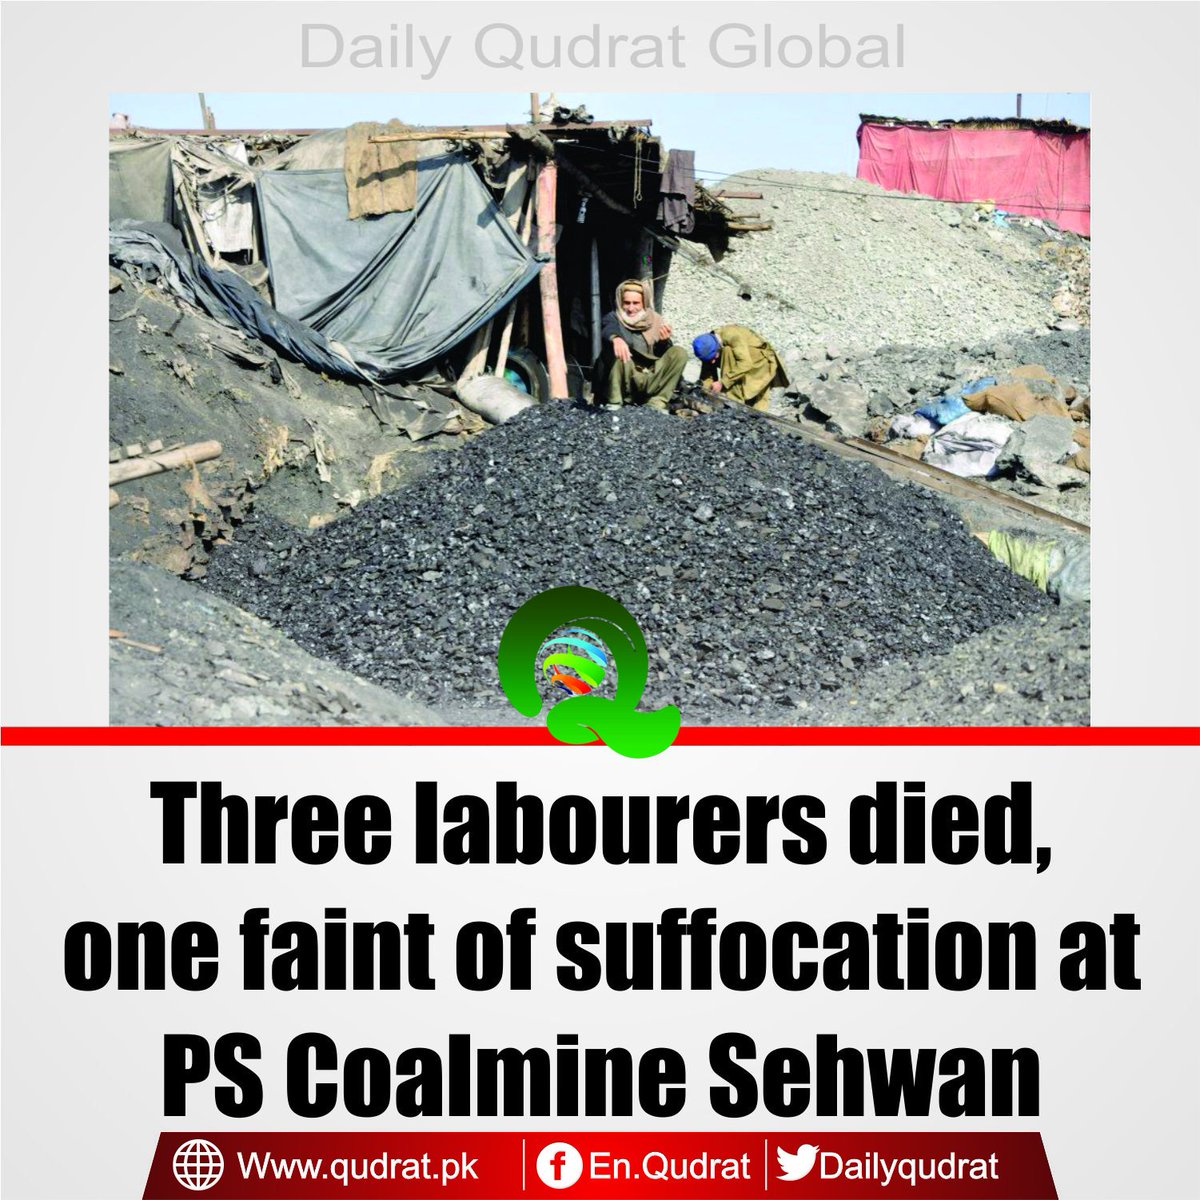 test Twitter Media - Read More:https://t.co/cDng1ou81L  Three #labourers #died, one faint of suffocation at #PS #Coalmine #Sehwan https://t.co/vmX3T6mMig